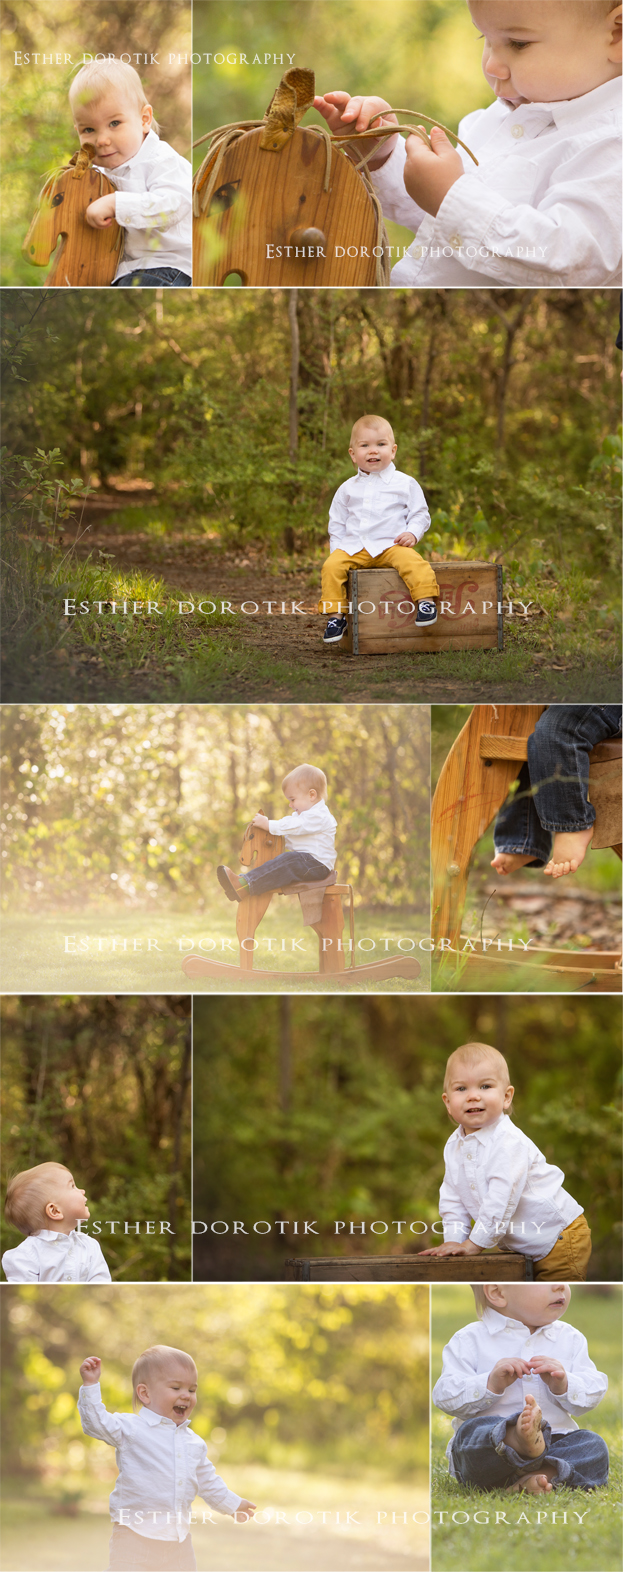 unique-outdoor-one-year-old-baby-photography-session-by-Frisco-newborn-photographer